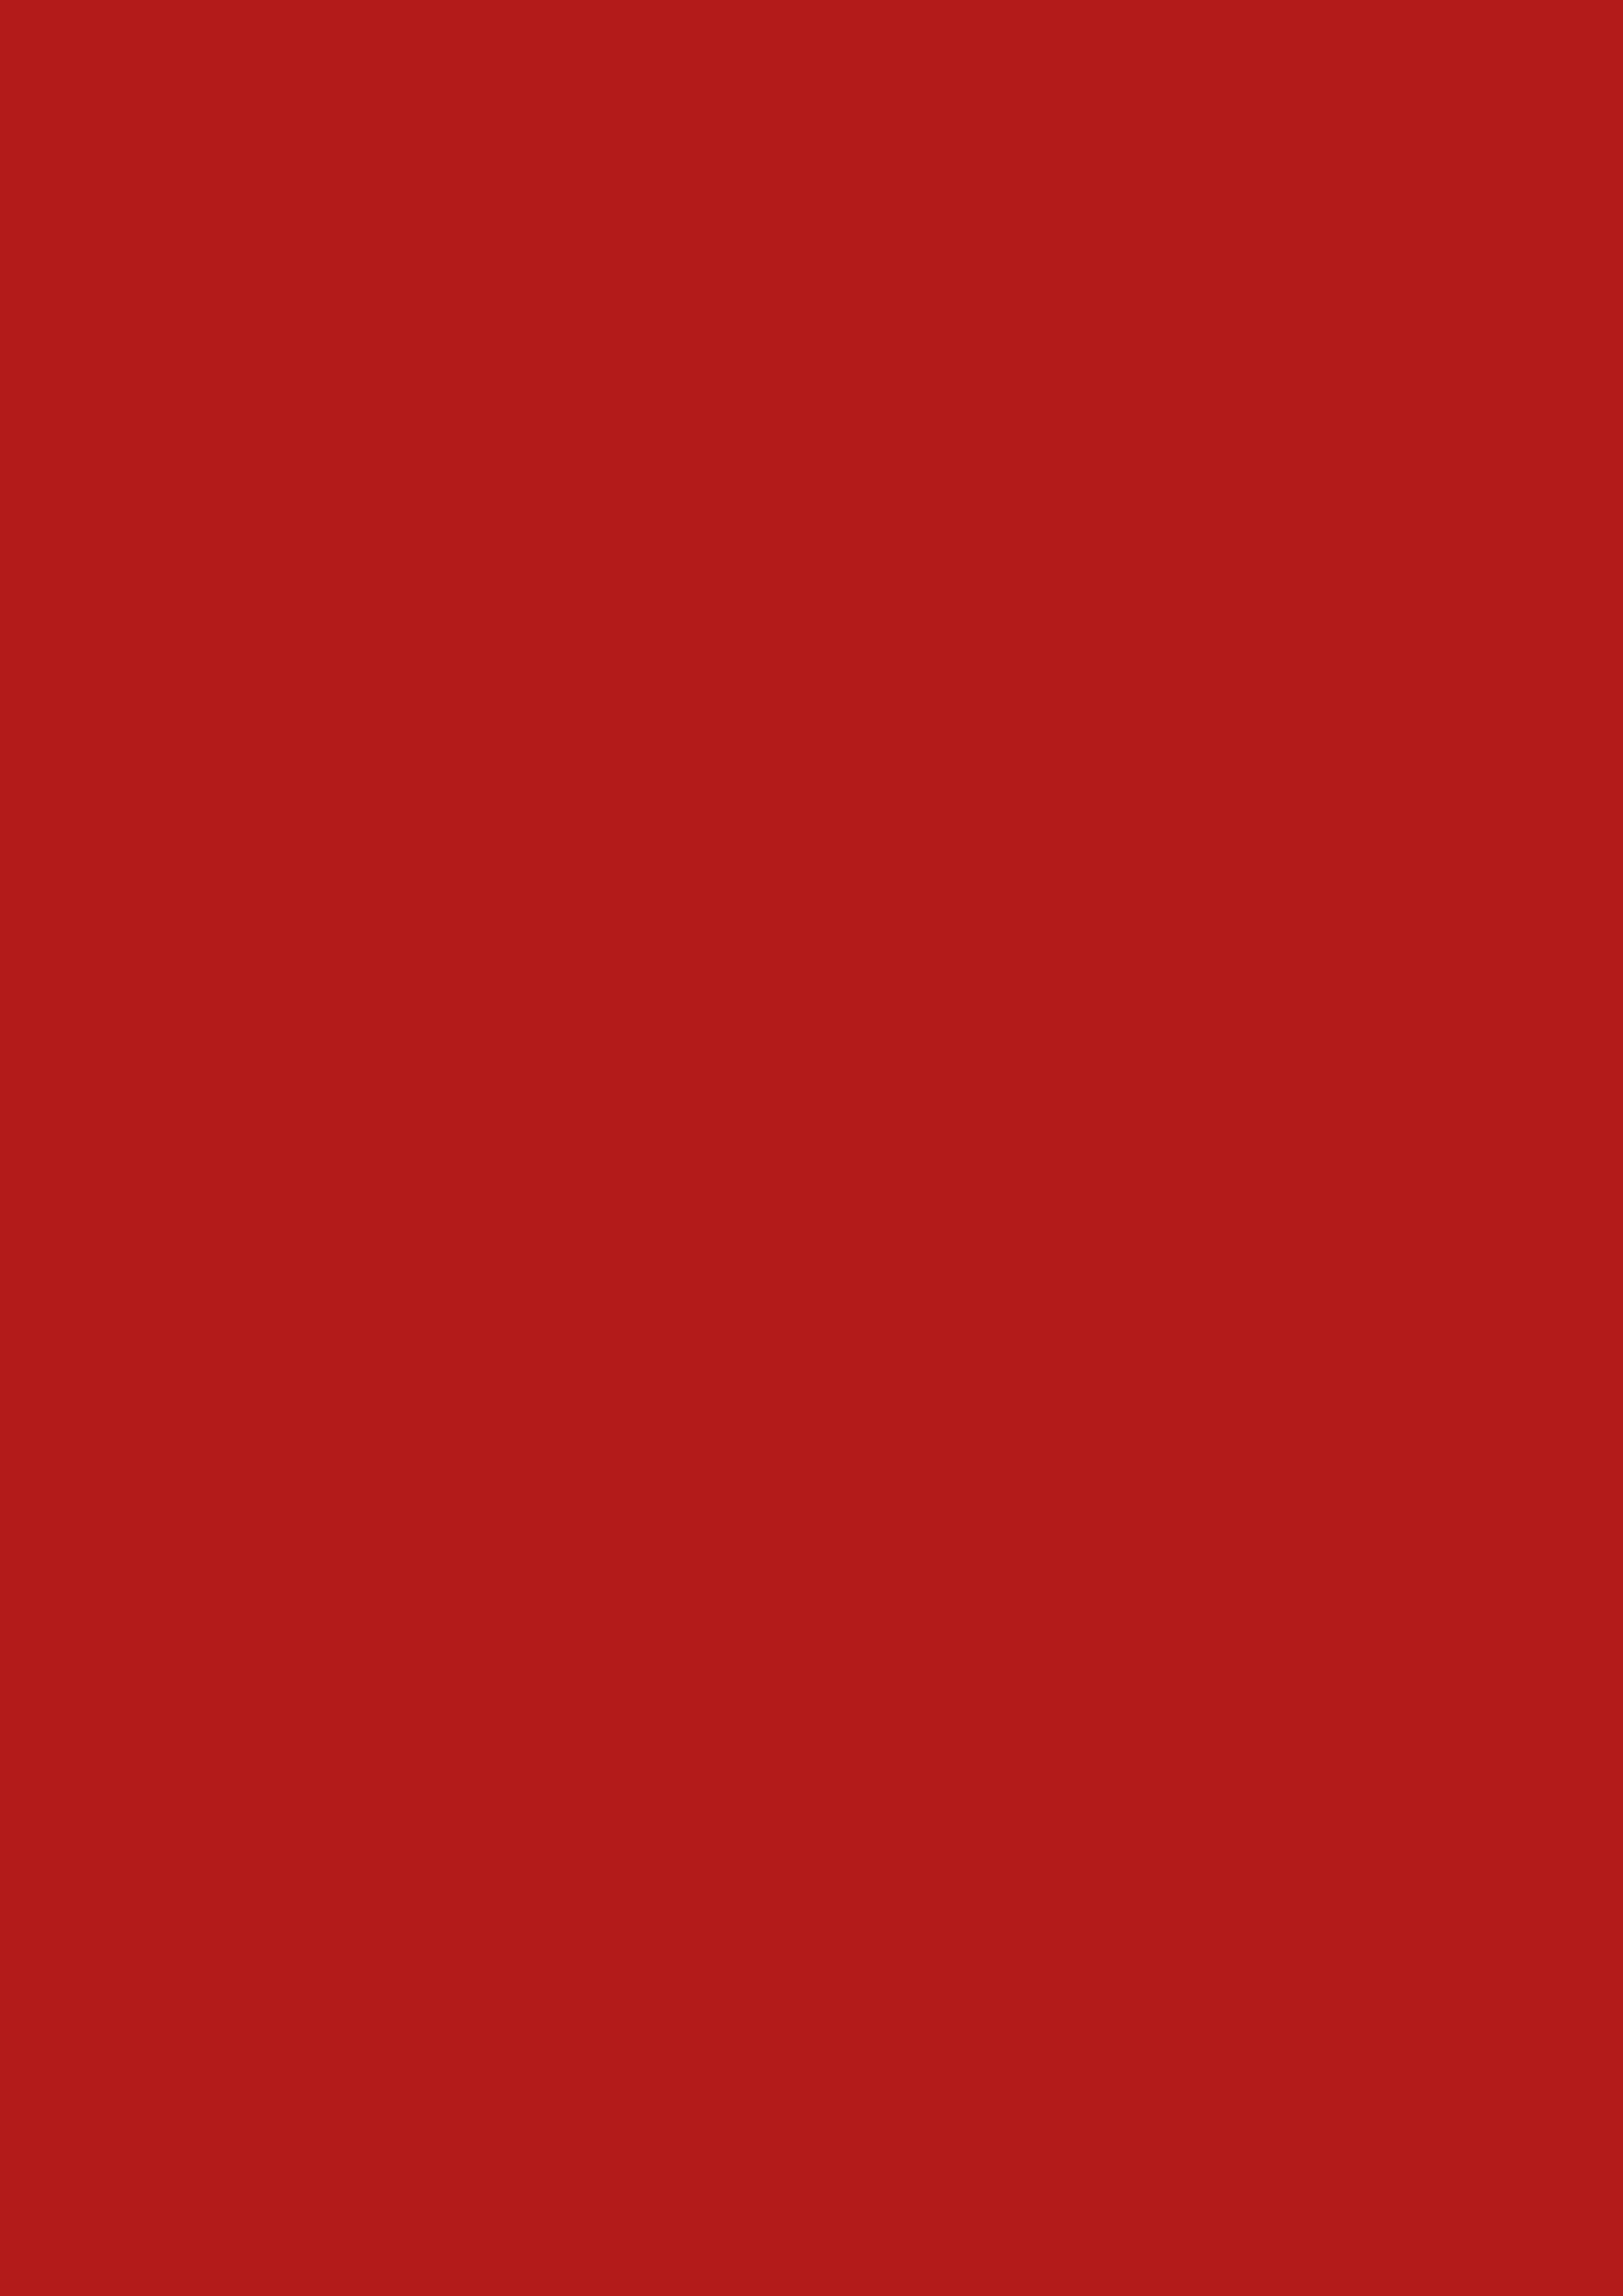 2480x3508 Cornell Red Solid Color Background